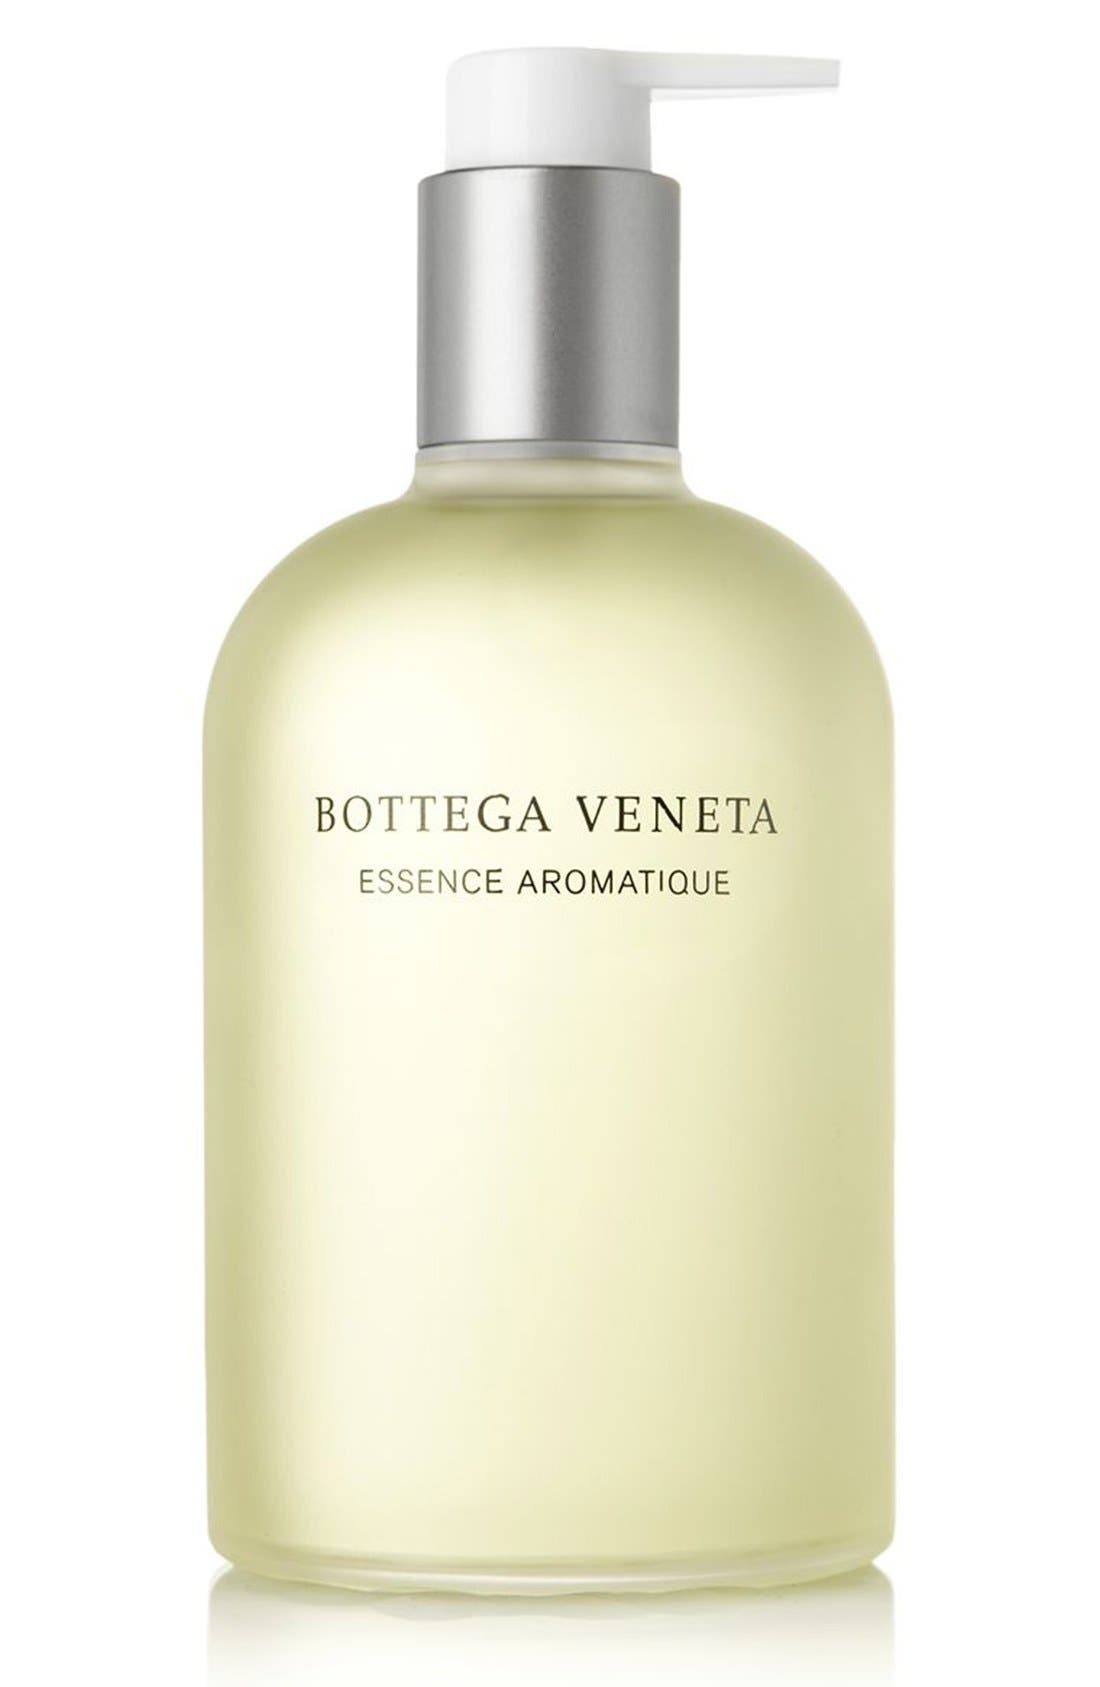 Bottega Veneta Hand & Body Liquid Soap for Women (Limited Edition)